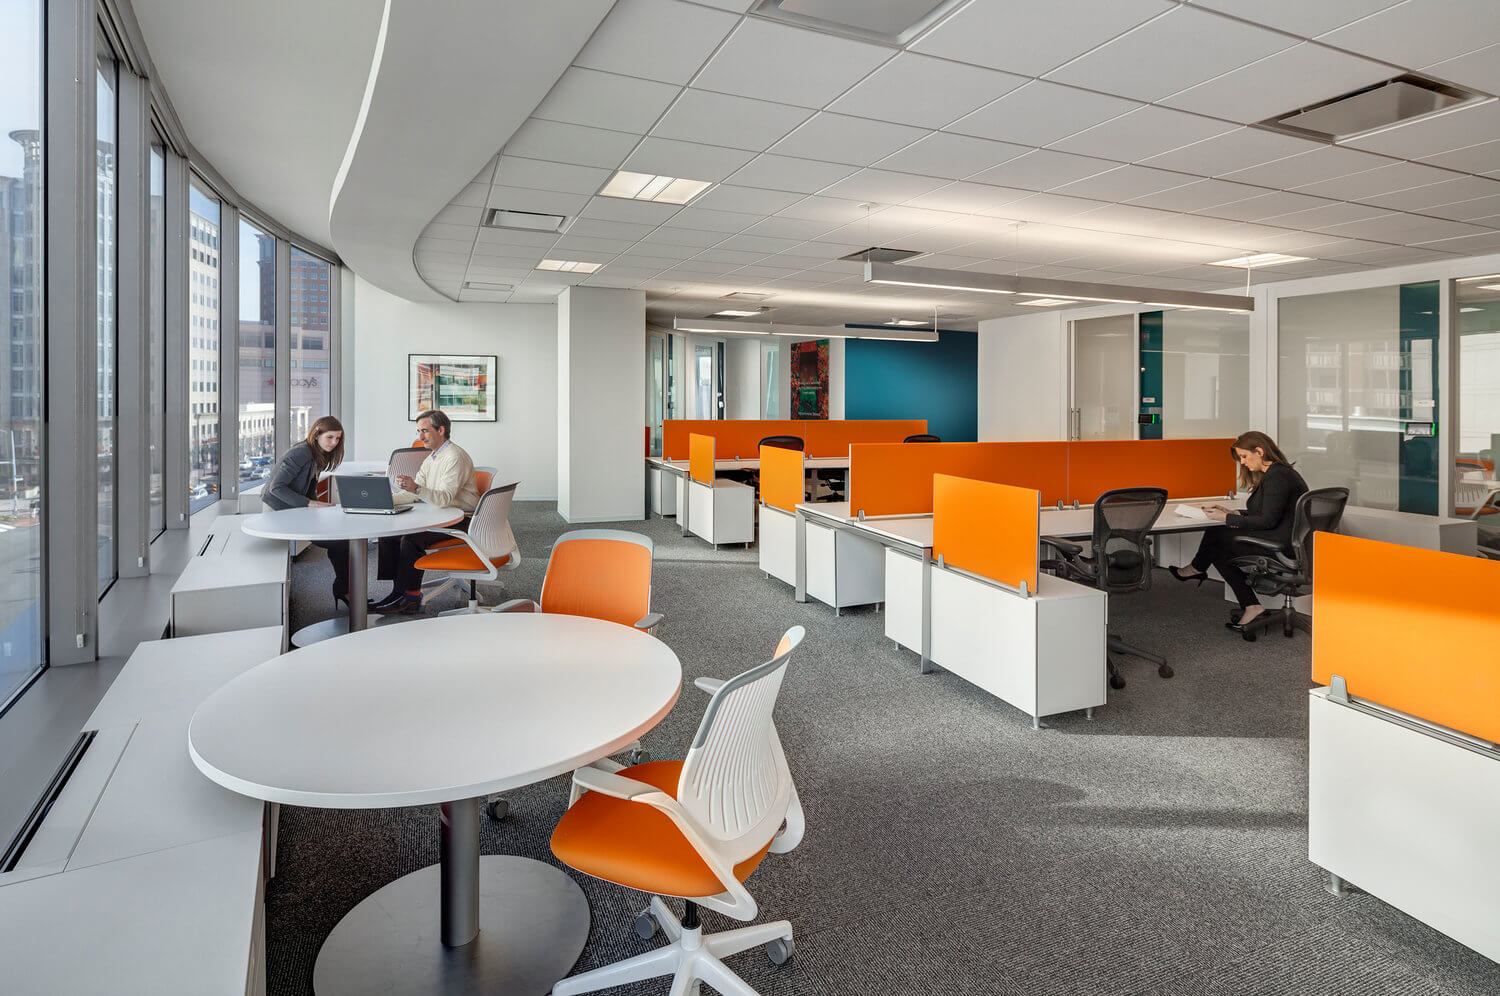 Workspaces at Accenture at 800 North Glebe Road in Arlington, Virginia